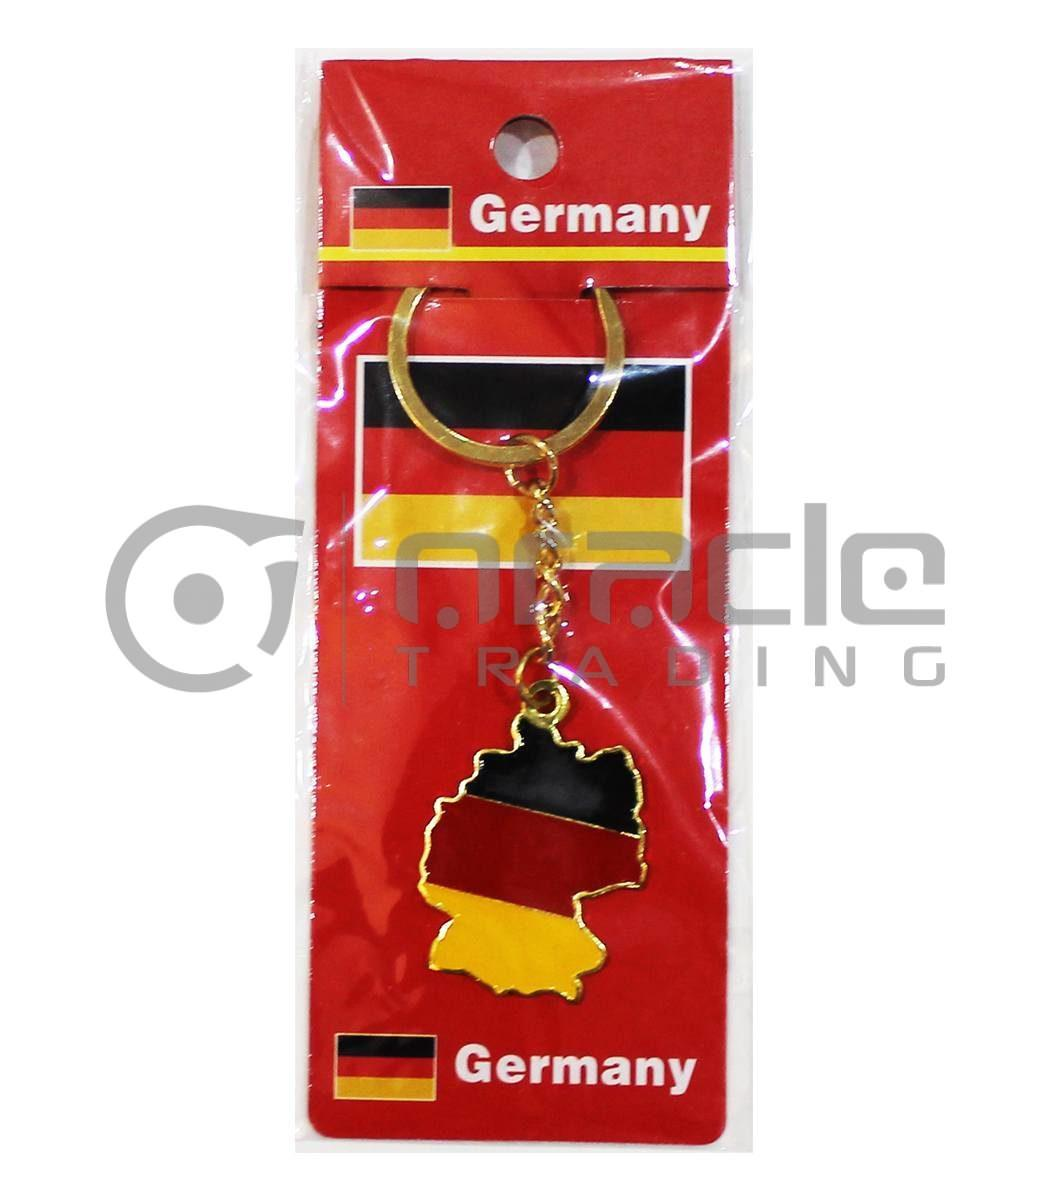 Germany Map Keychain 12-Pack